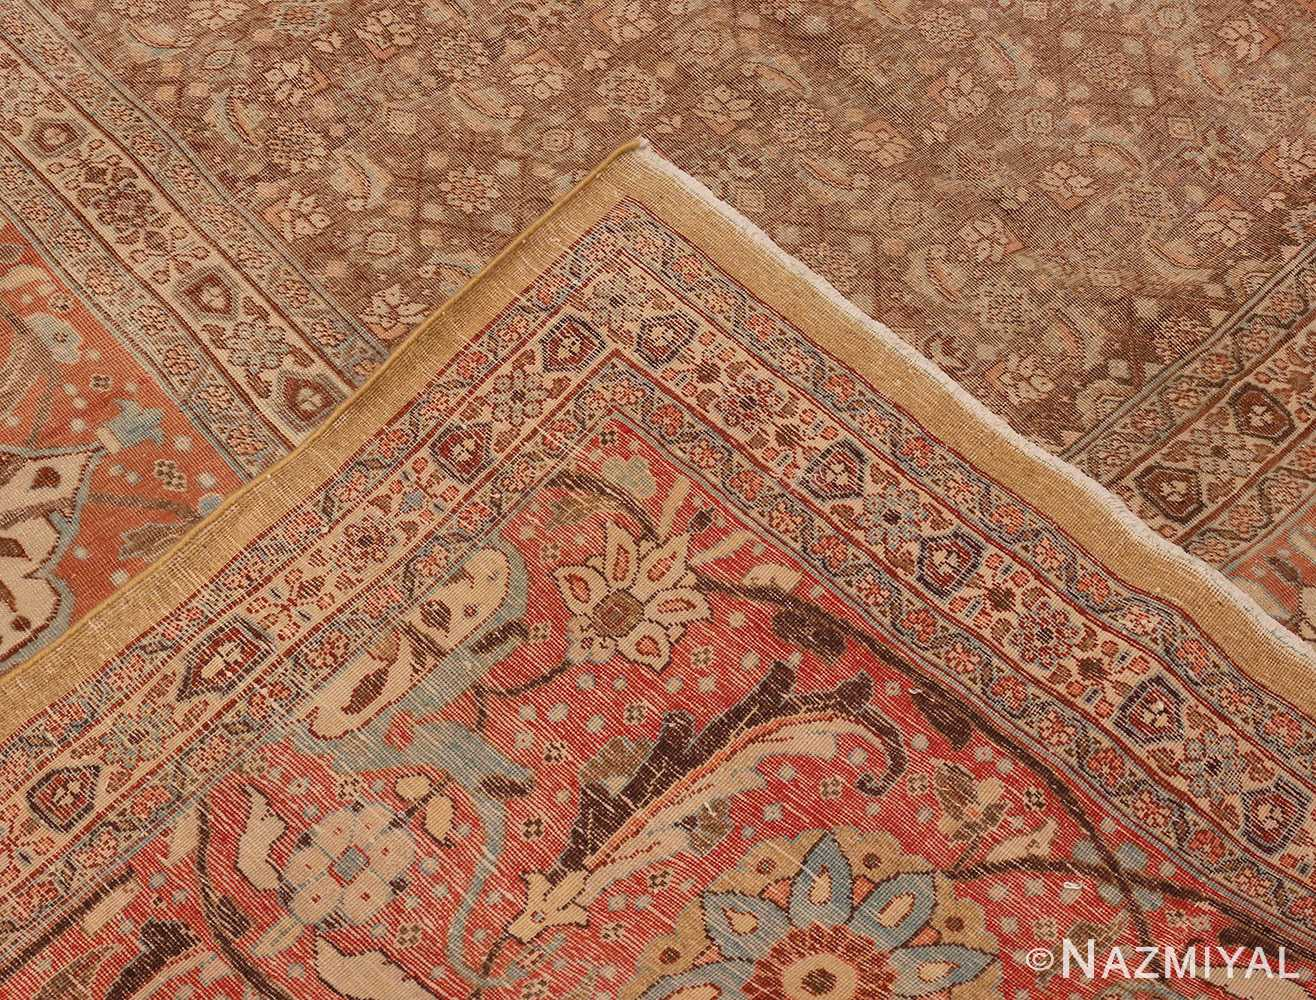 Picture of the Weave Of Antique Persian Tabriz Rug #50627 from Nazmiyal Antique Rugs in NYC